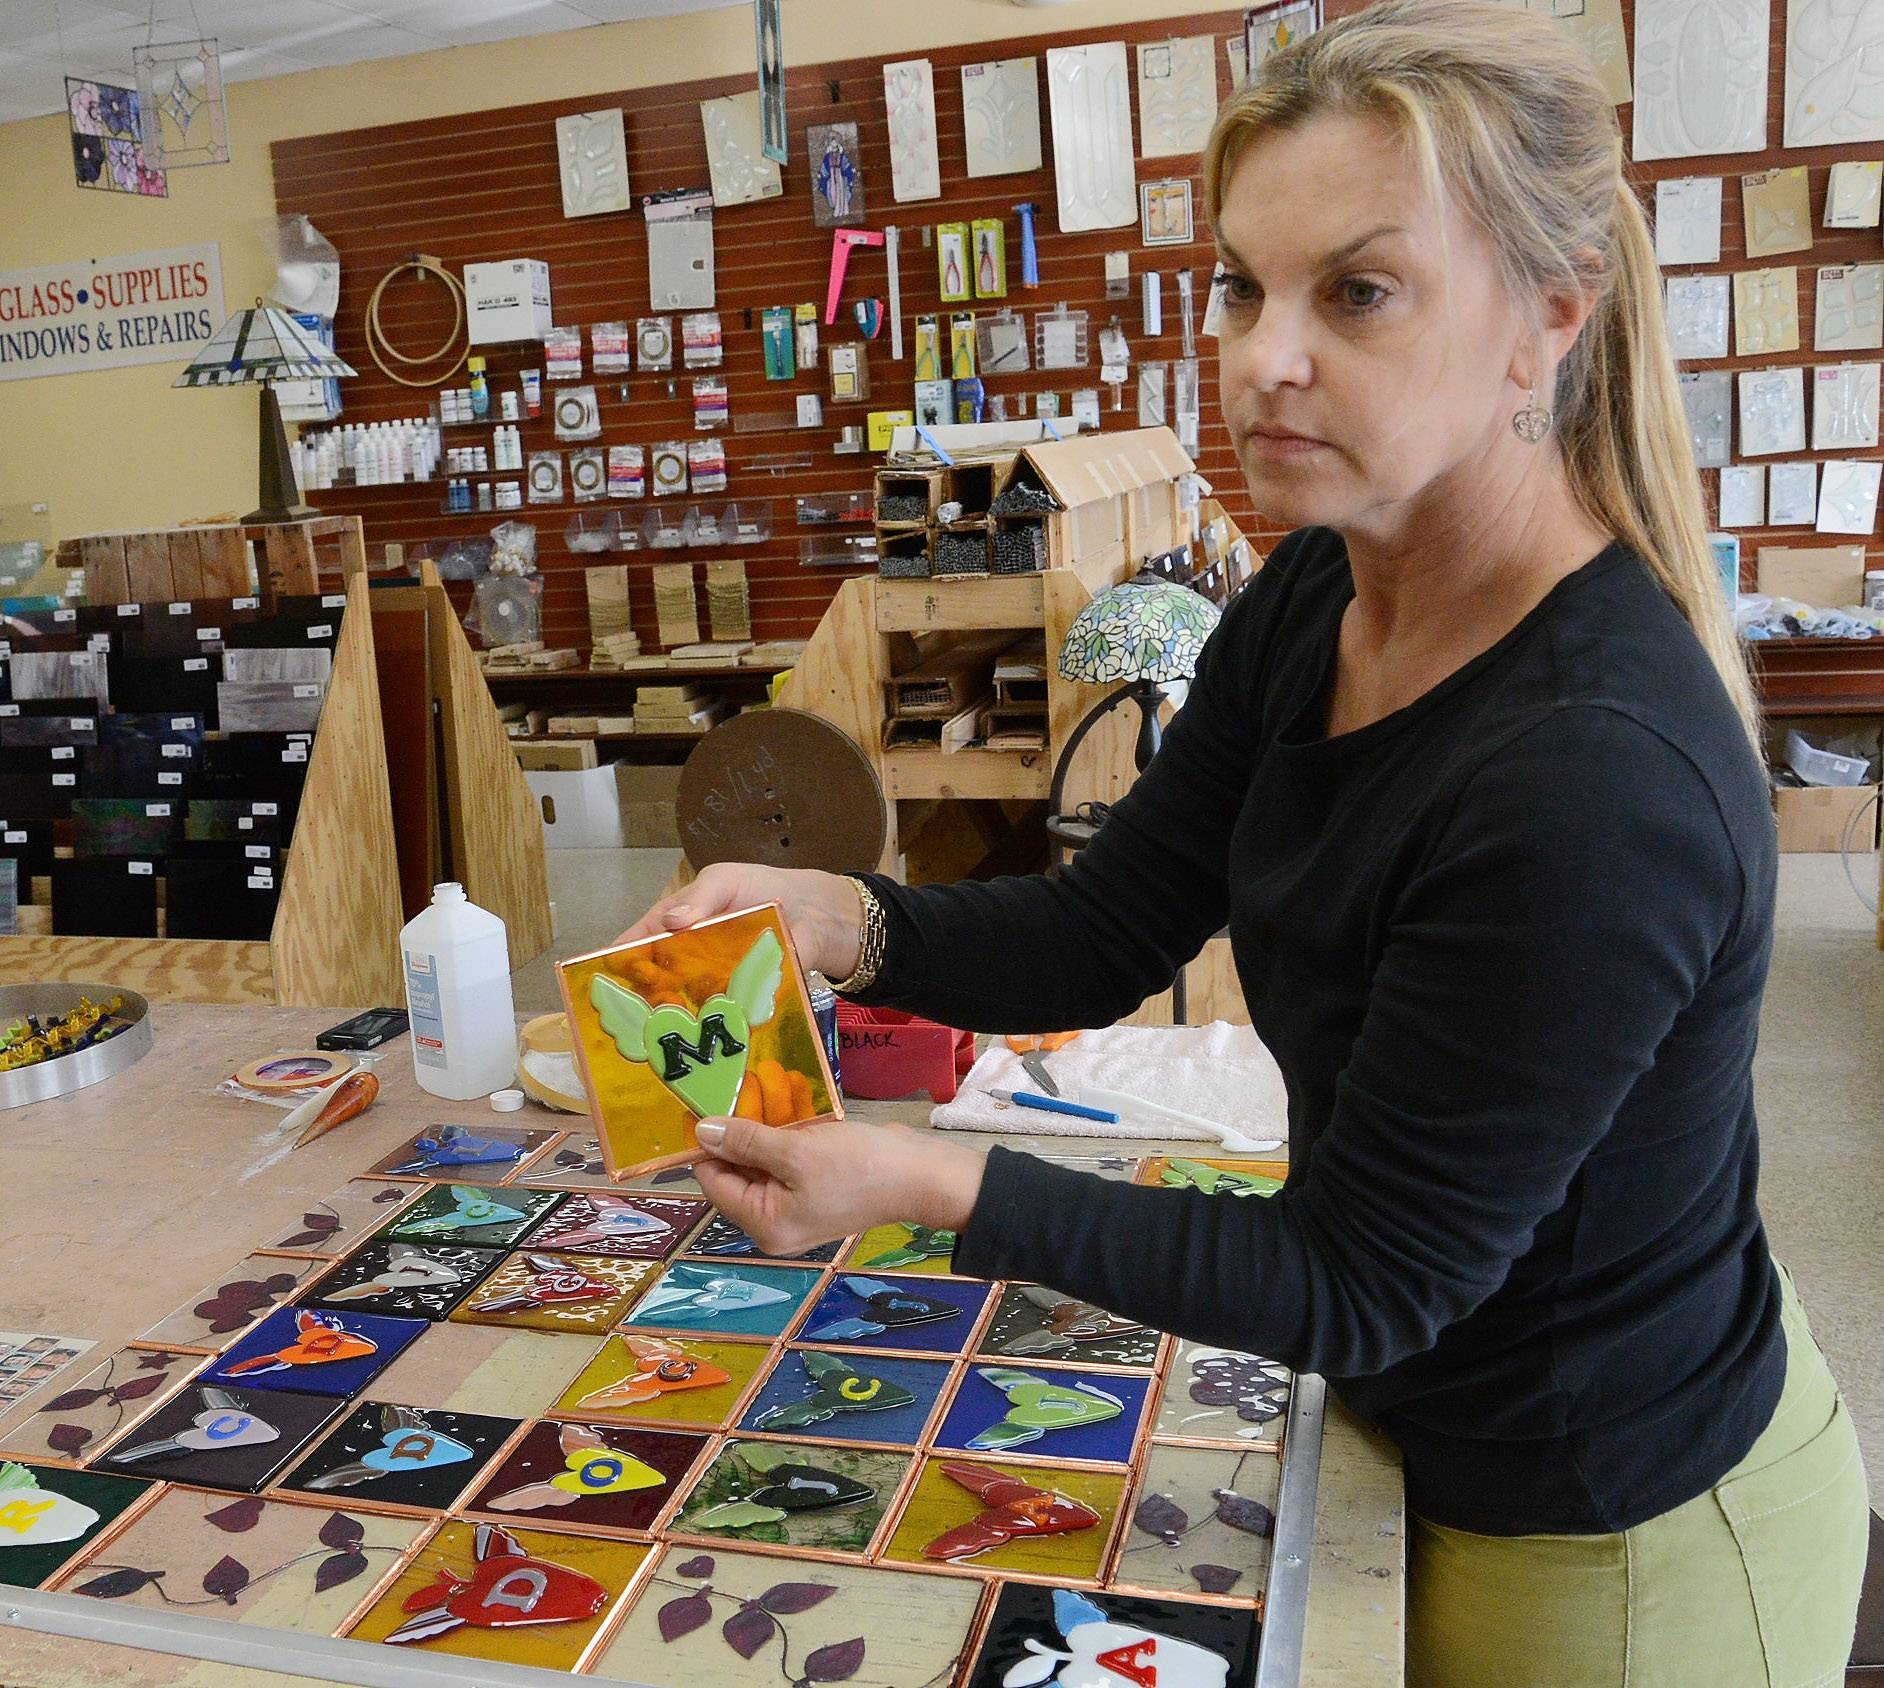 Patti Muller of New Orleans is making a stained glass quilt in remembrance of the 2012 Sandy Hook school shooting in Connecticut. She came to Suevel Studios in Arlington Heights this week to put all the pieces into one larger panel and add finishing touches.